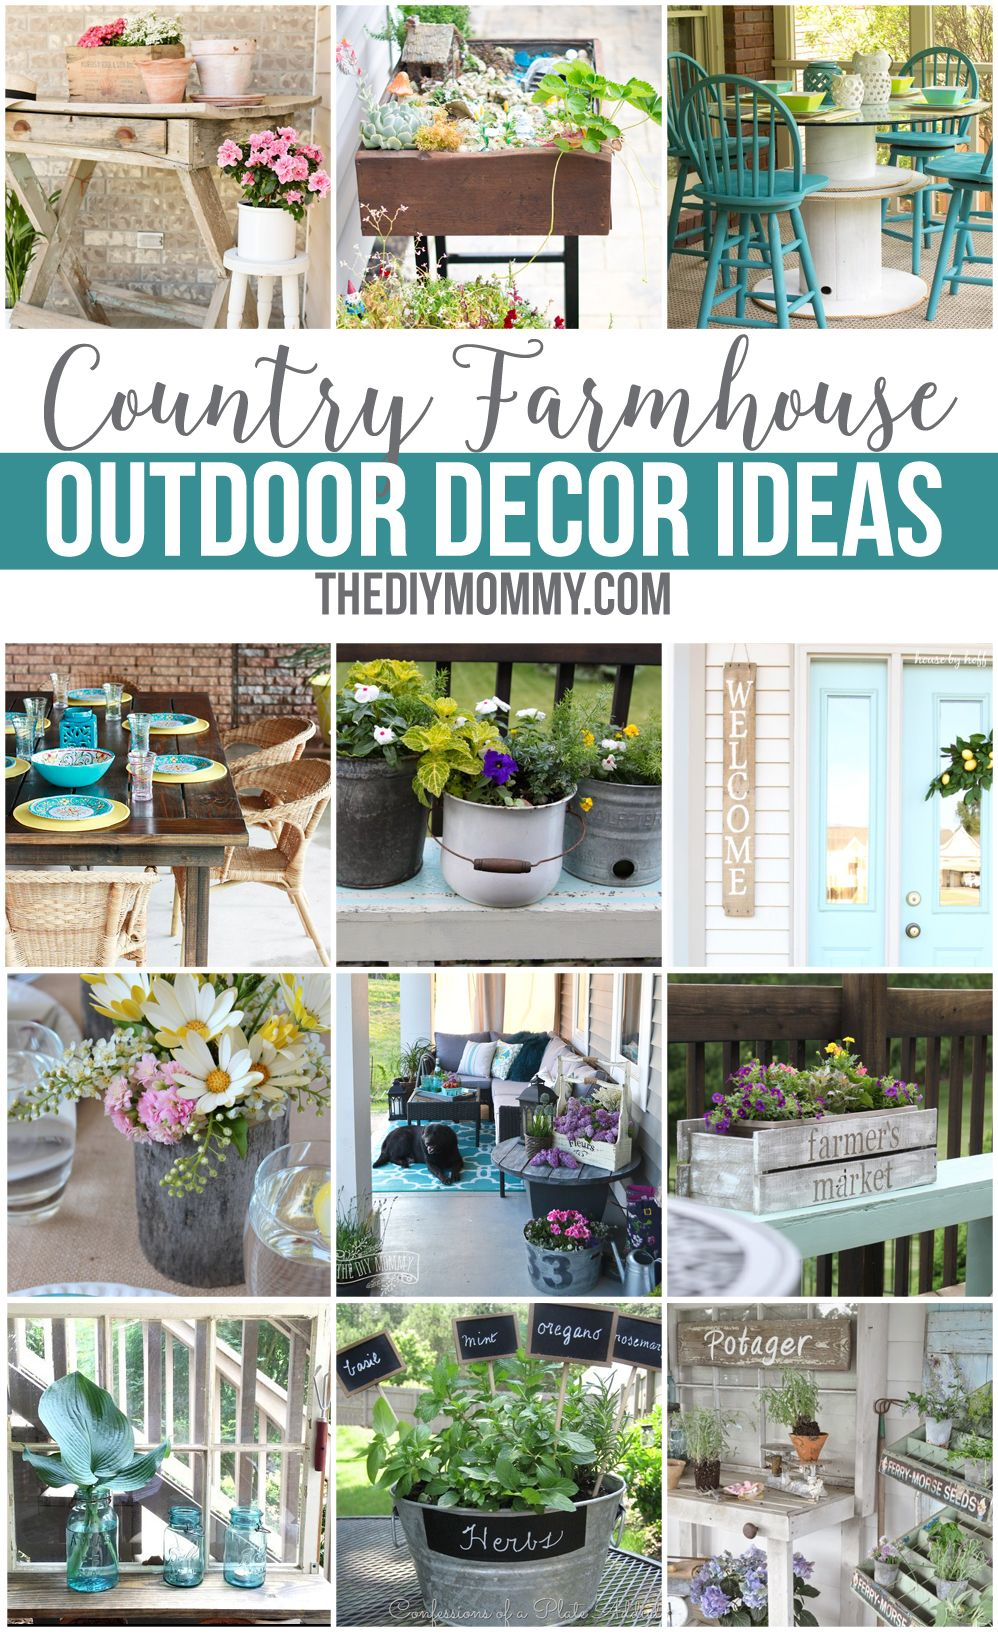 Gorgeous Country Farmhouse Outdoor Decor DIY Ideas For Your Patio Deck Garden And Yard